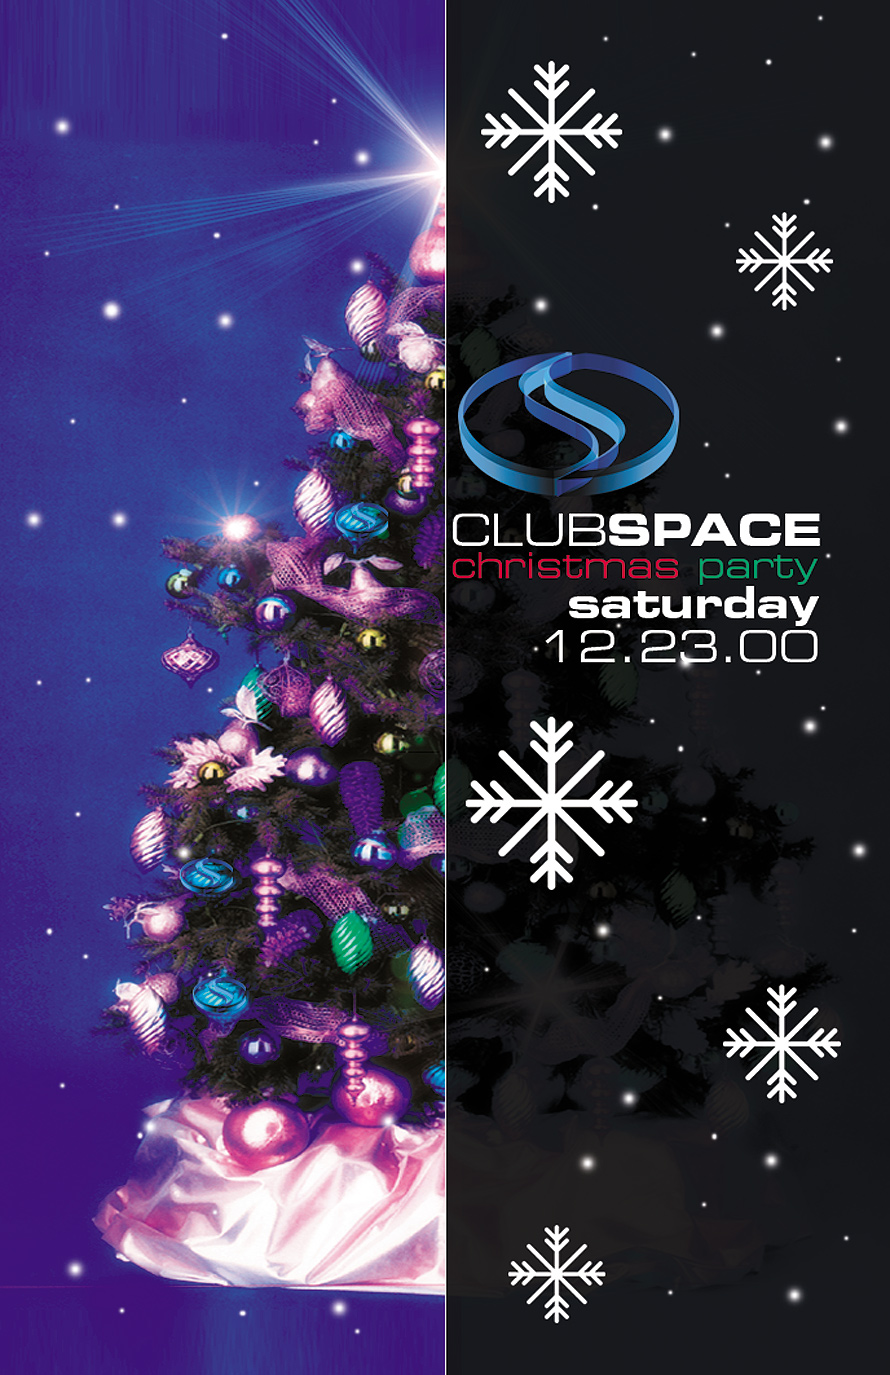 Club Space Downtown Miami Christmas Party